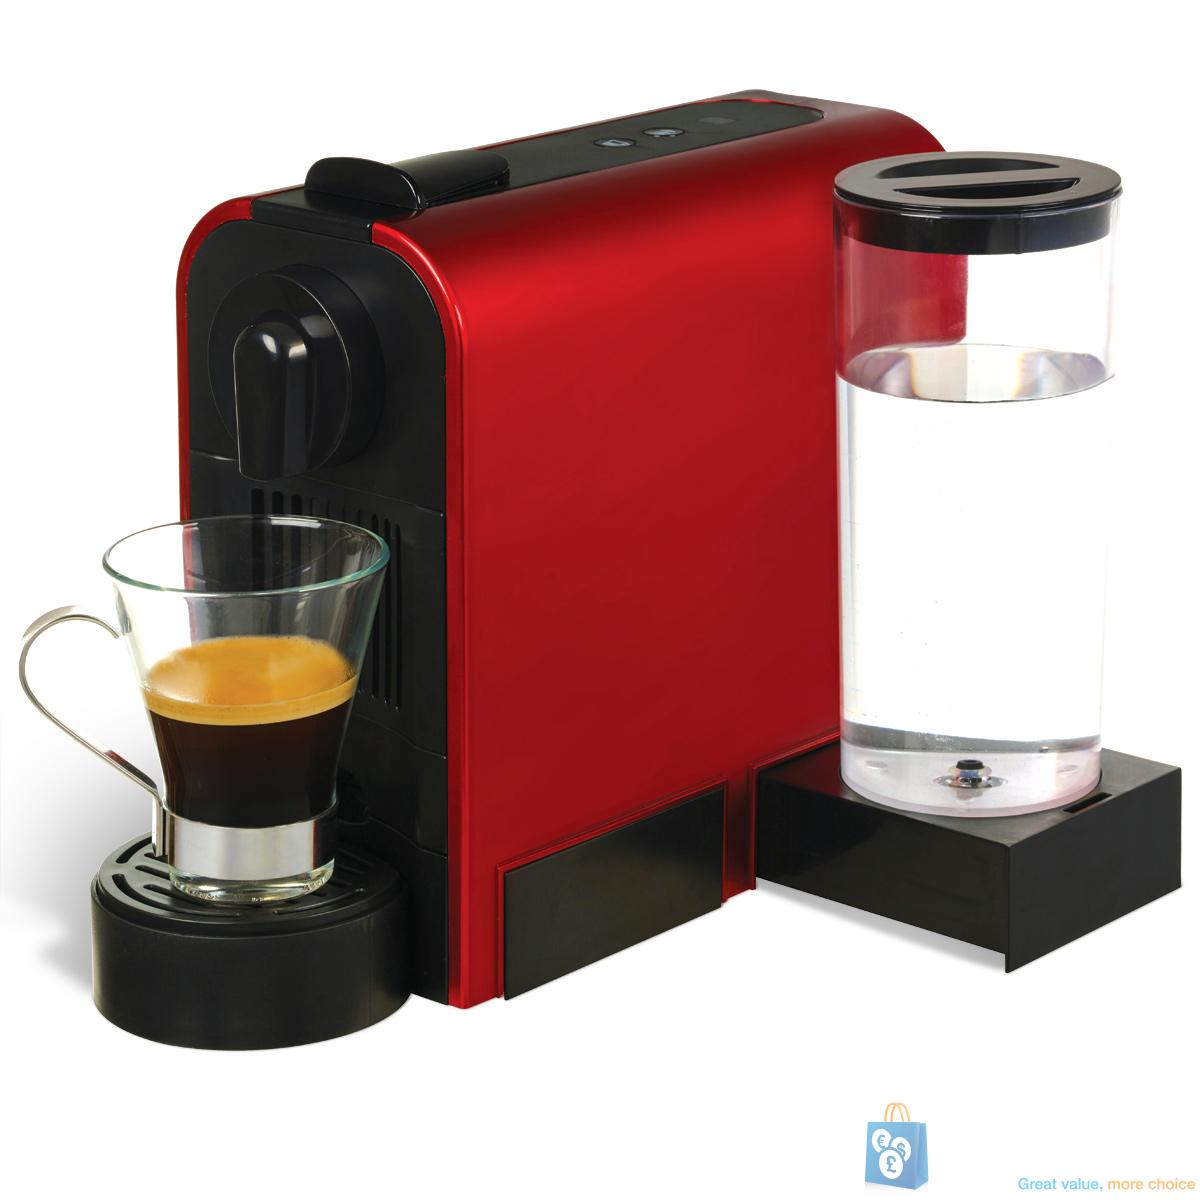 Platinum Capsule Coffee Maker : Capsule Coffee Maker eBay